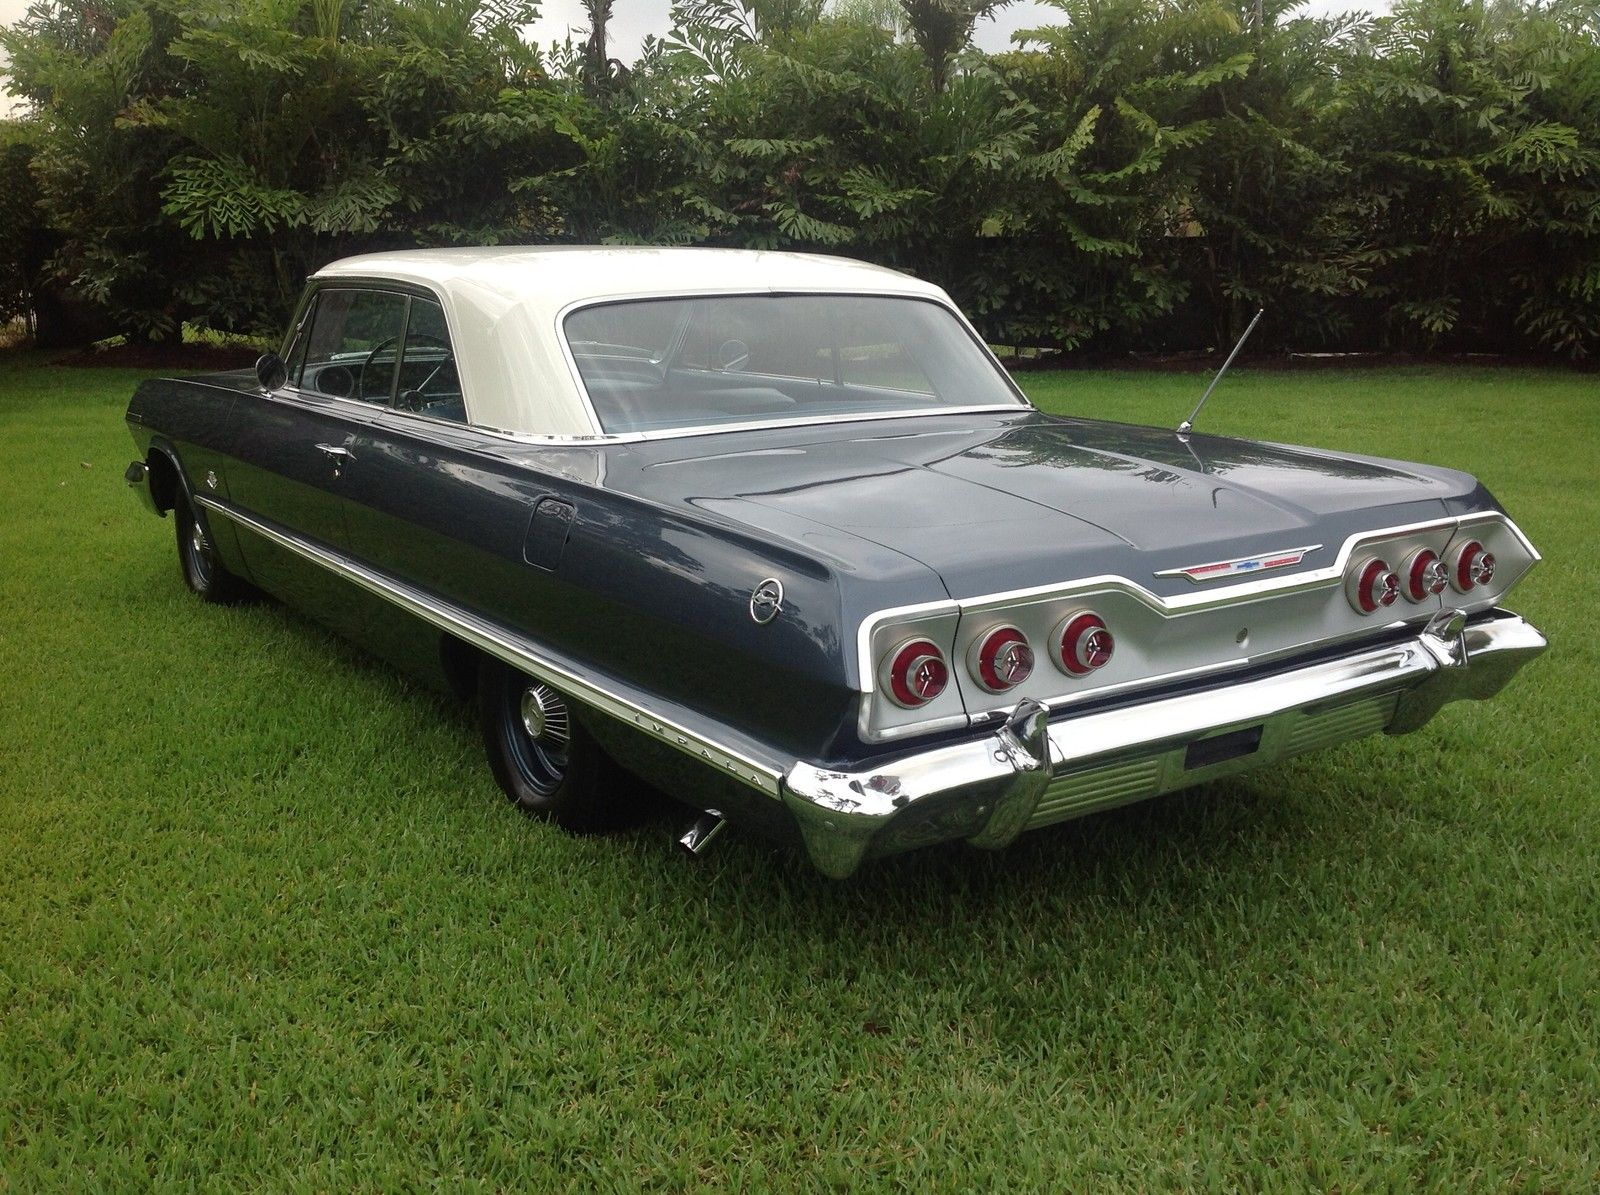 1963 Impala Sport Coupe - 409 blue 03